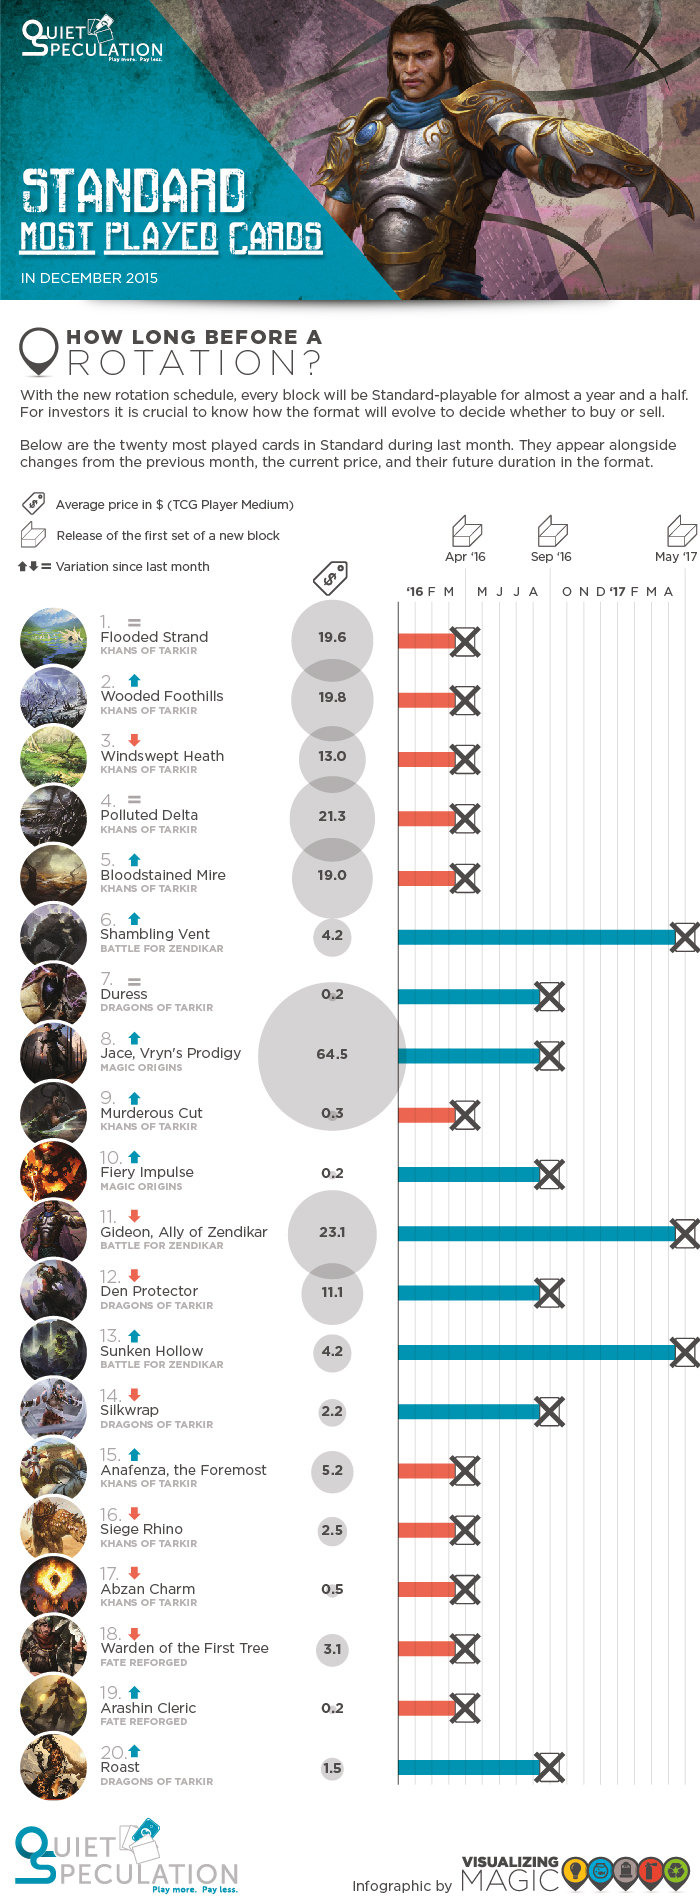 QS_201601_A Most played cards in Standard-01